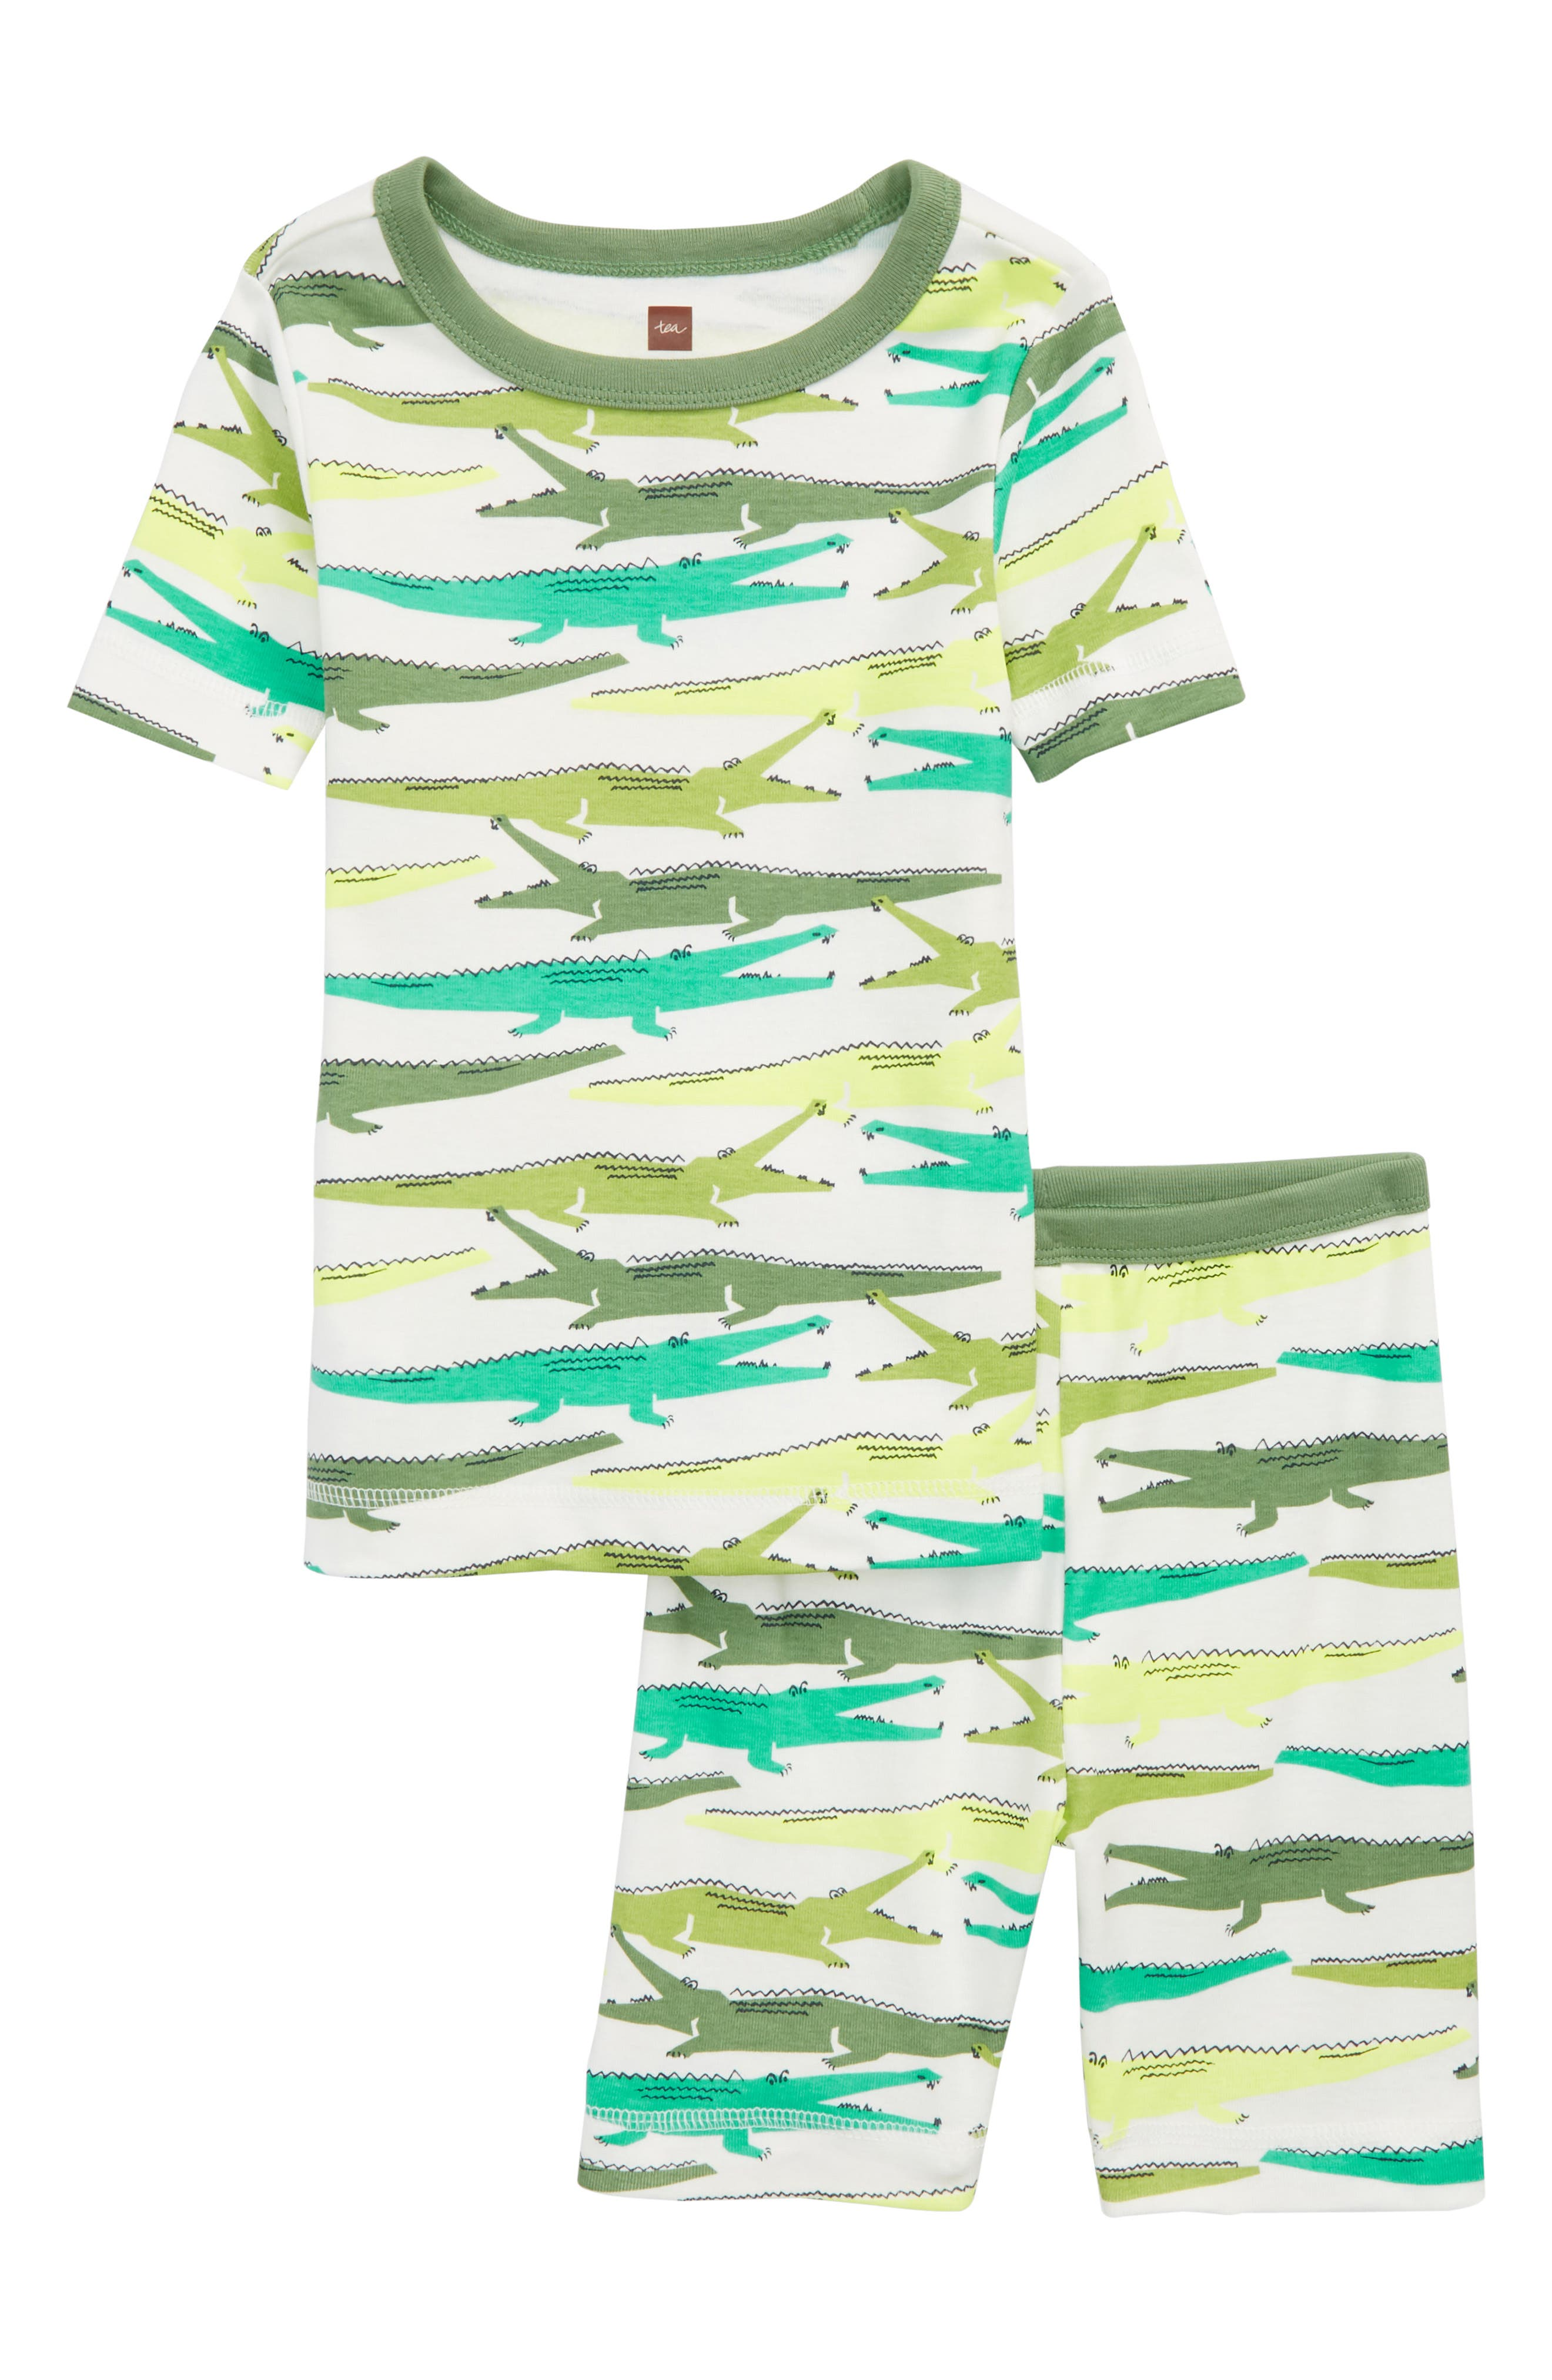 Alternate Image 1 Selected - Tea Collection Print Fitted Two-Piece Pajamas (Toddler Boys, Little Boys & Big Boys)